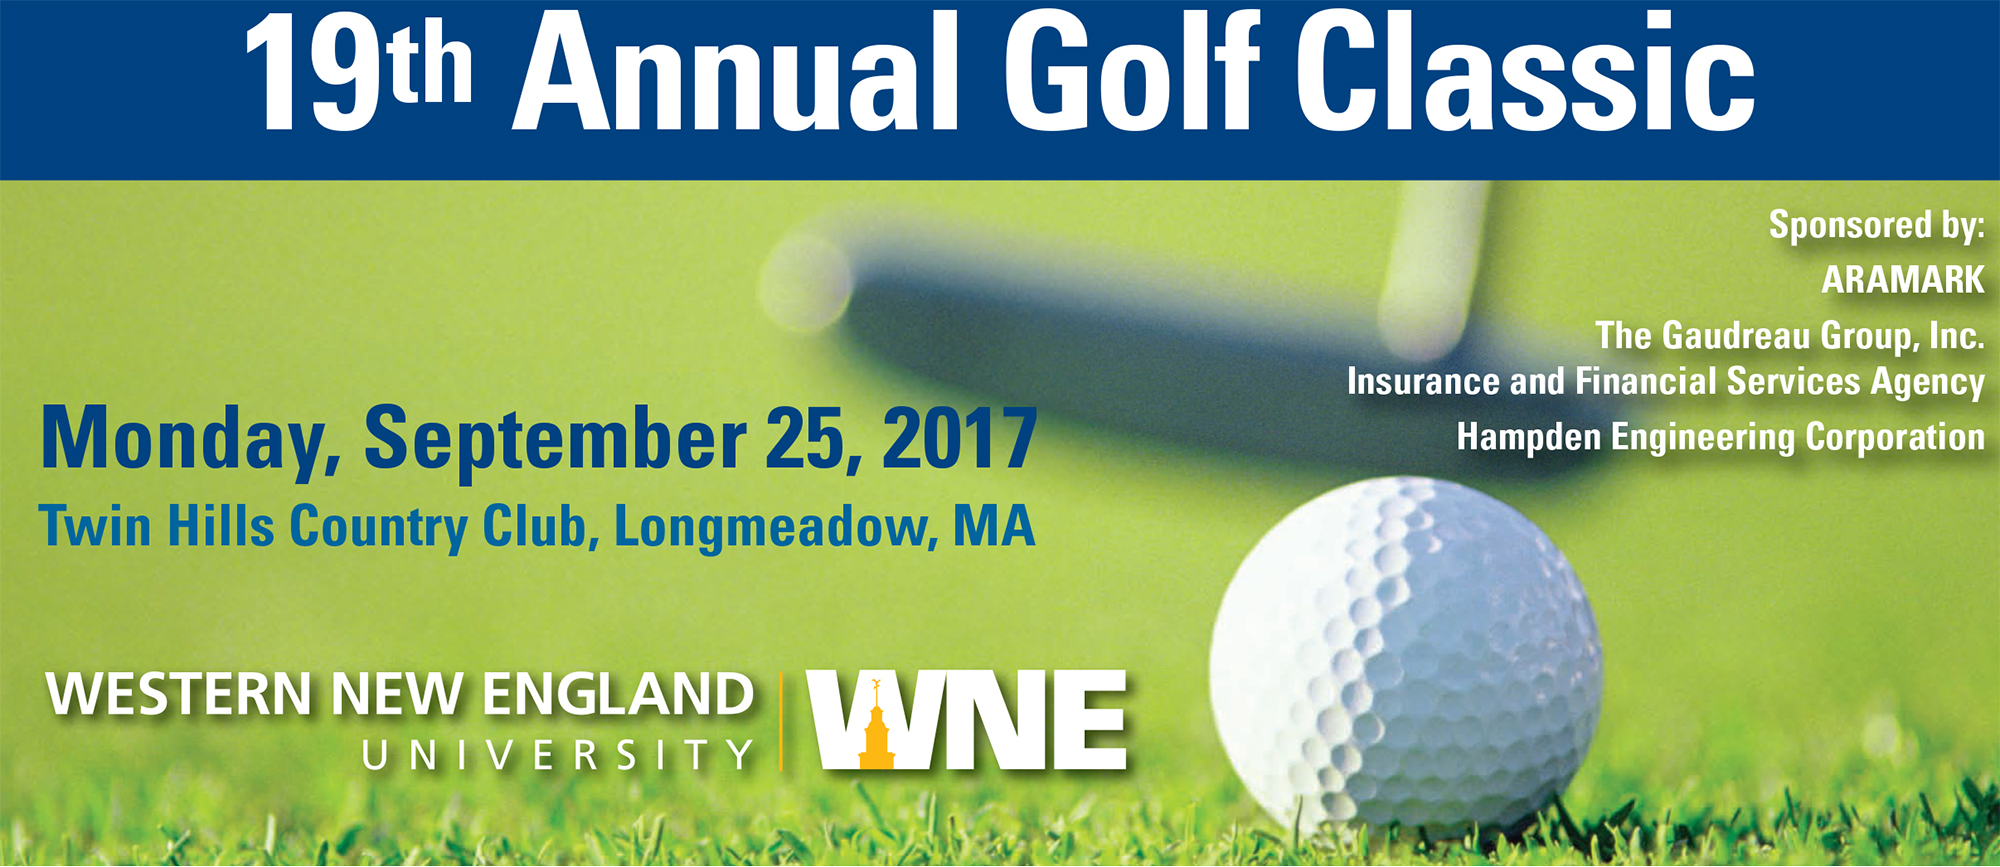 Western New England to Hold 19th Annual Golf Classic on Monday, September 25th